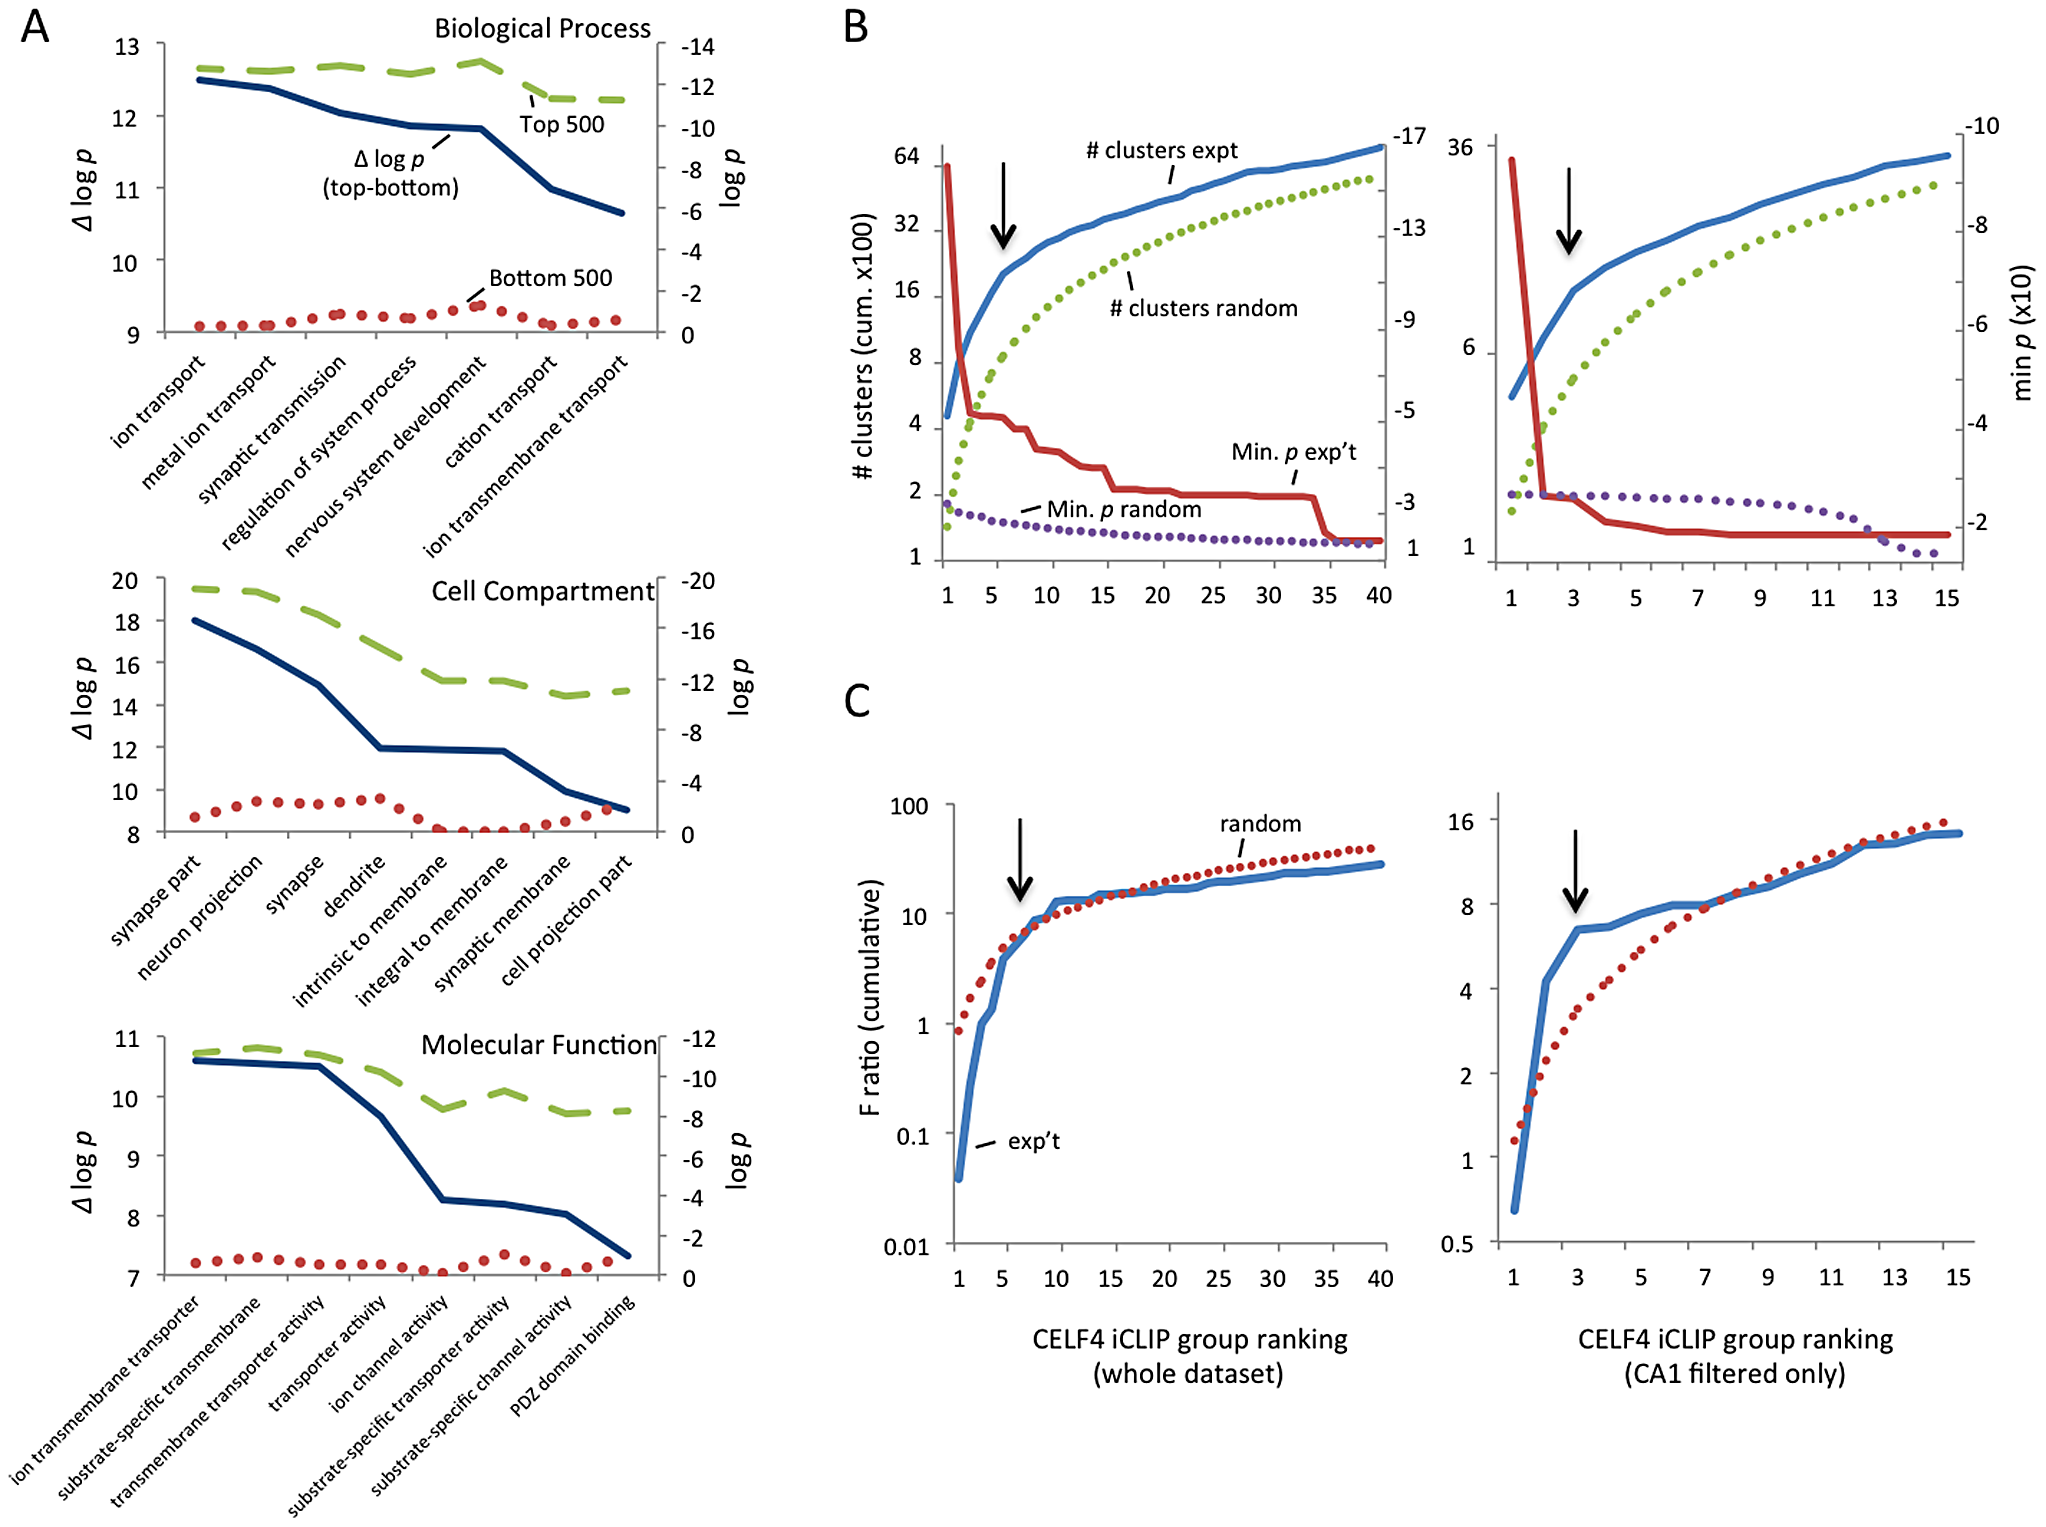 Functional annotation clustering of CELF4 mRNA targets and estimating CELF4 target binding threshold.